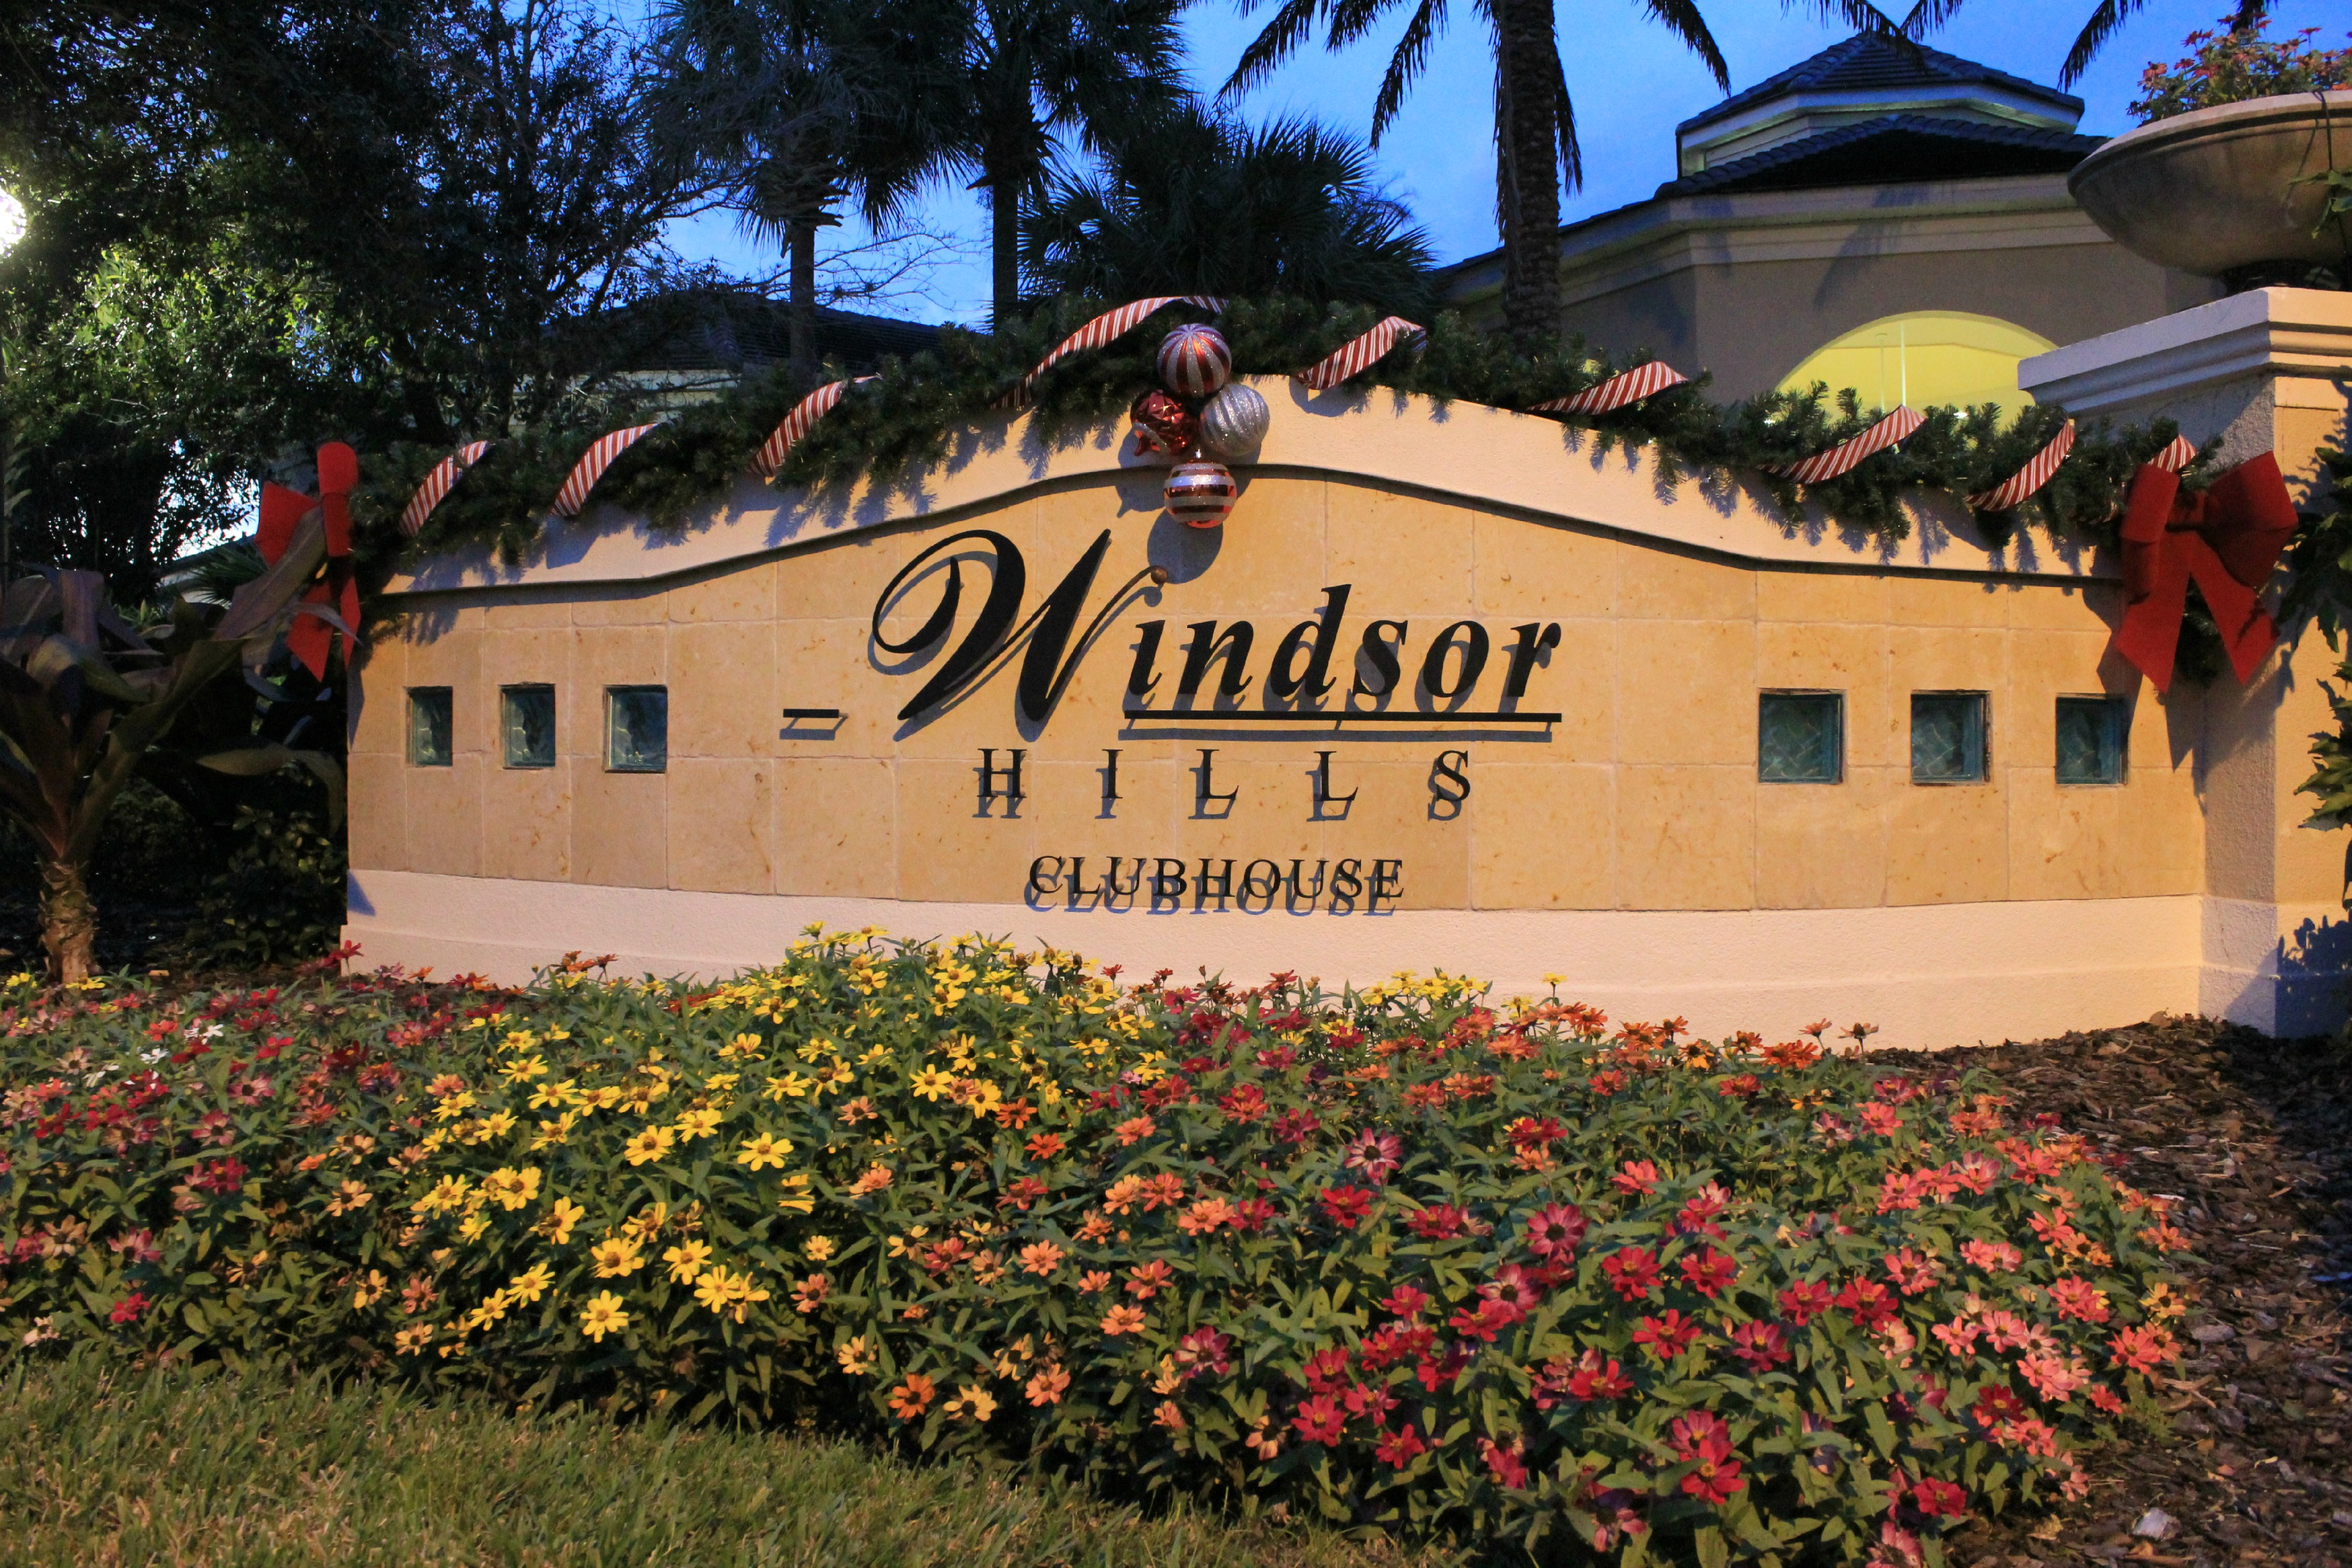 Global Resort Homes: Windsor Hills is Perfect for Groups and Family Reunions! #globalresorts